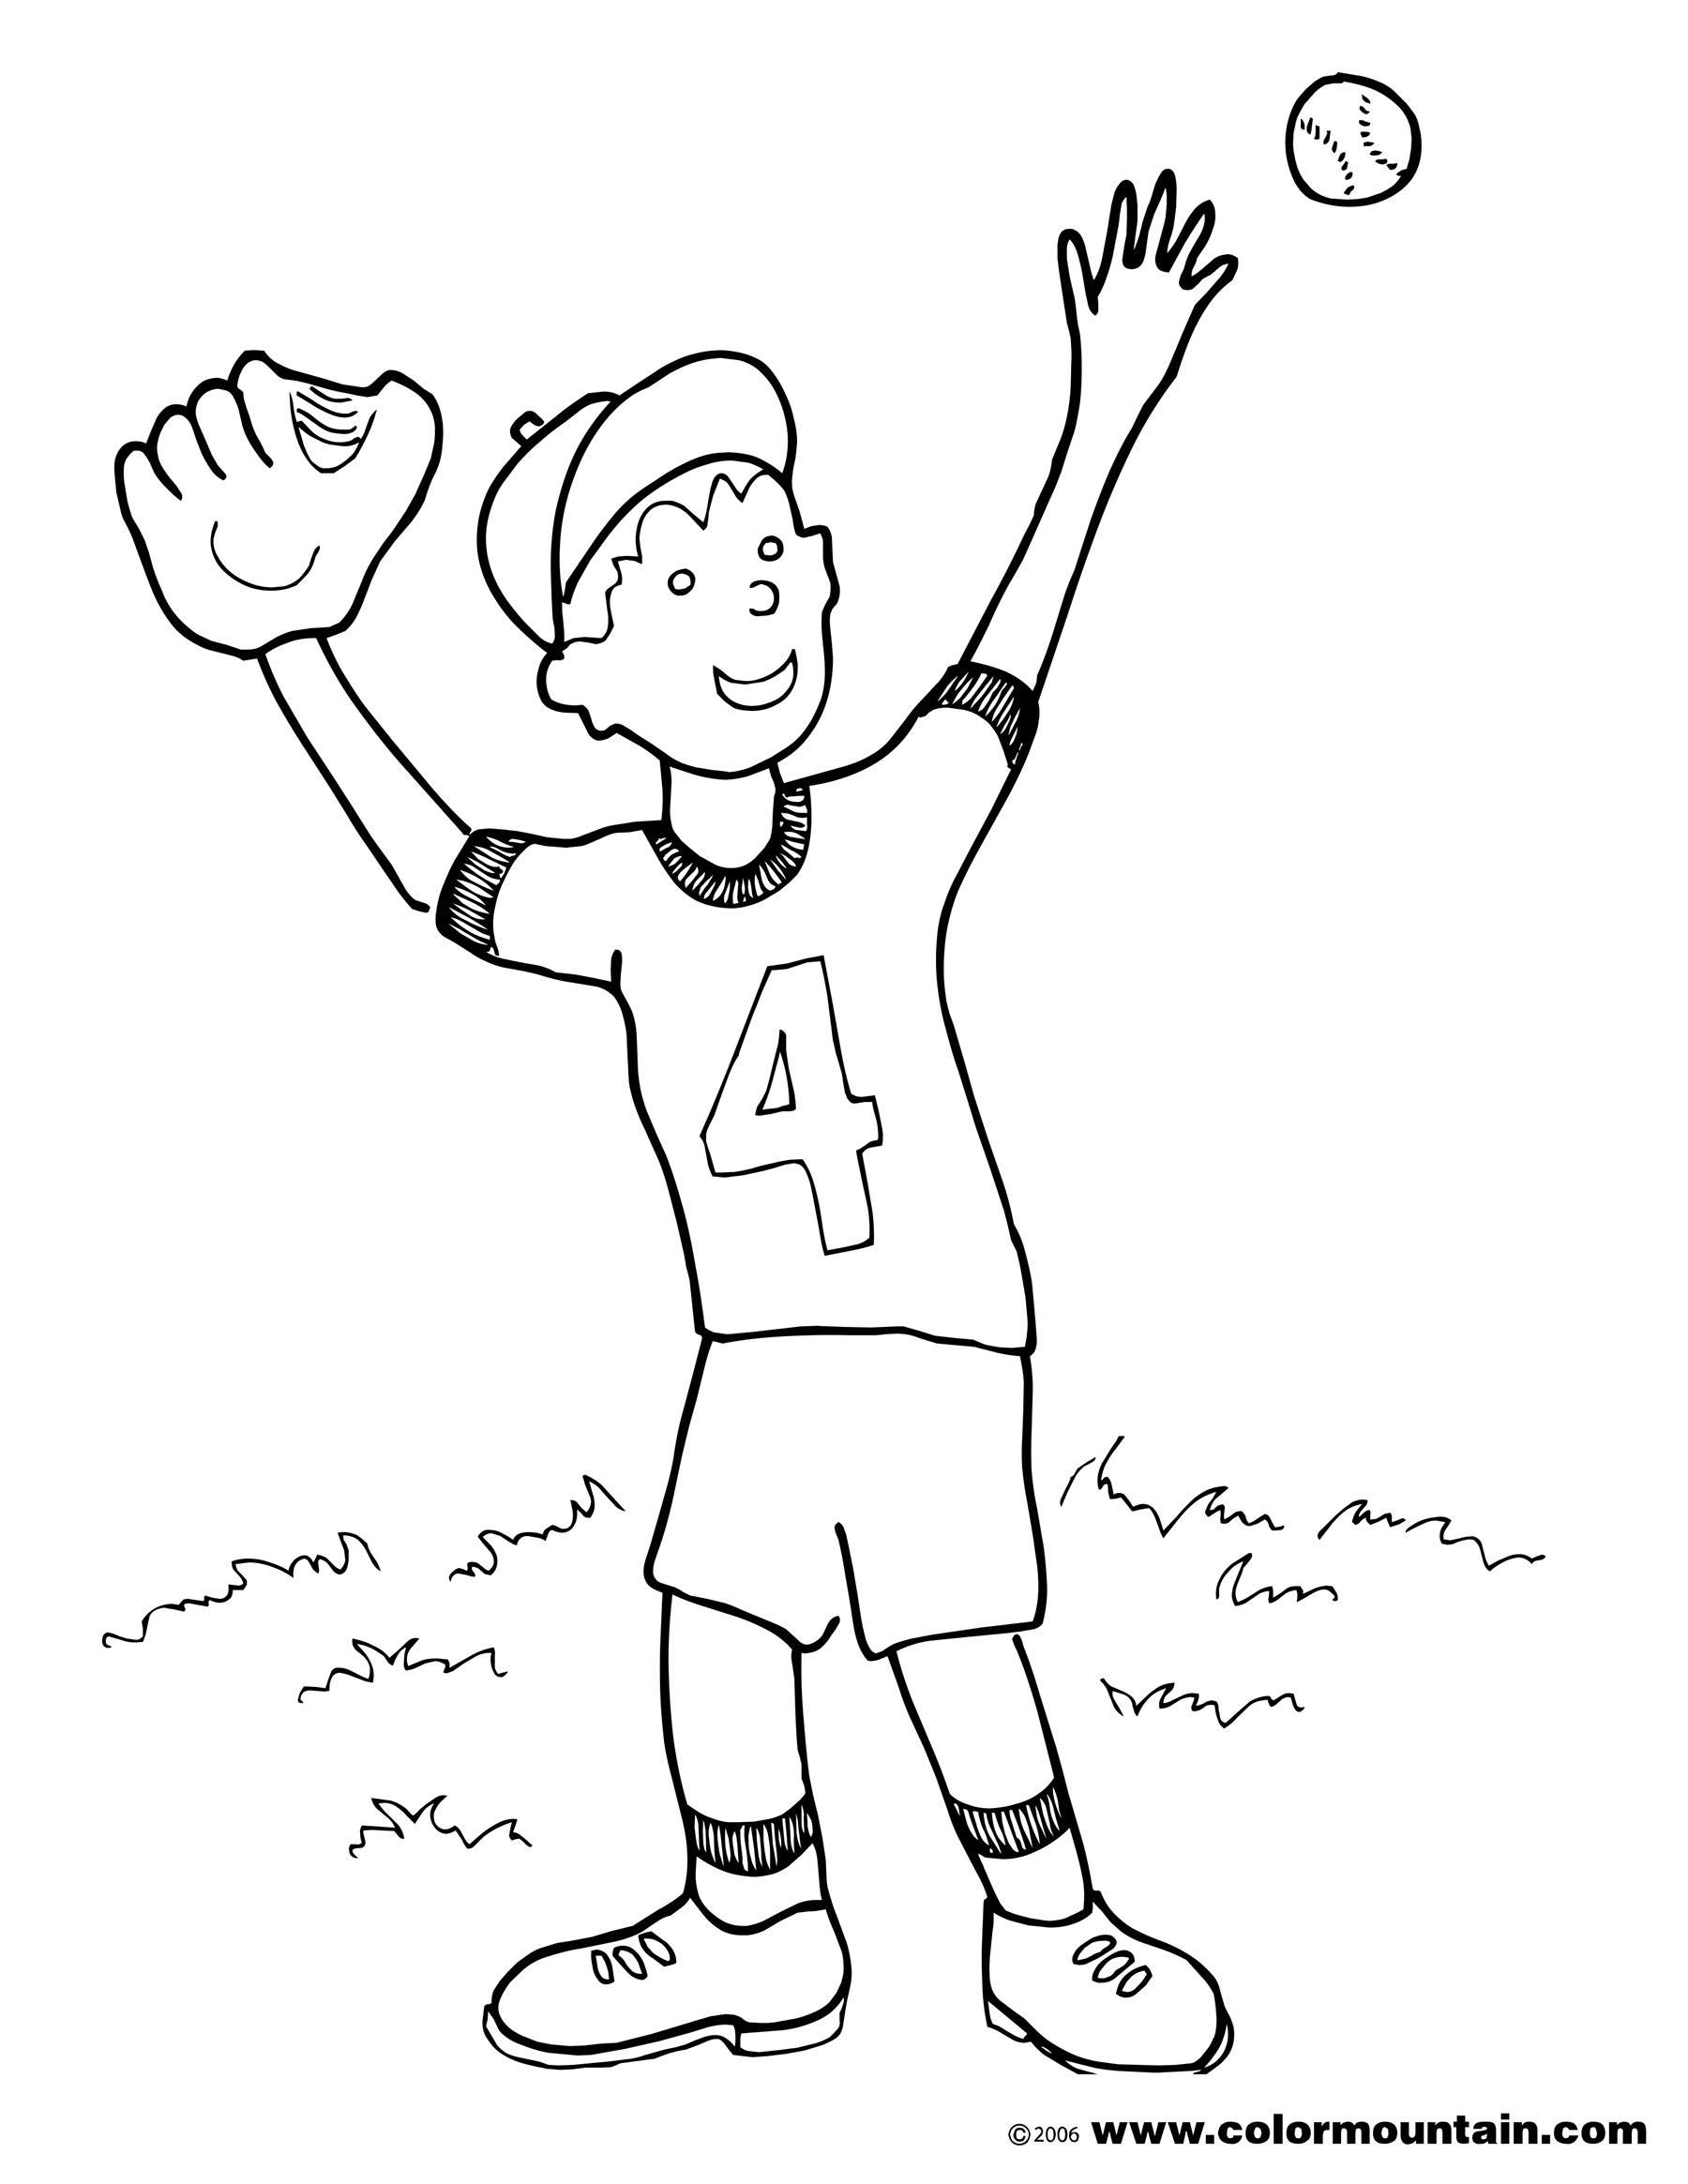 cubs baseball coloring pages chicago cubs doodle coloring page adult coloring page sports pages coloring cubs baseball